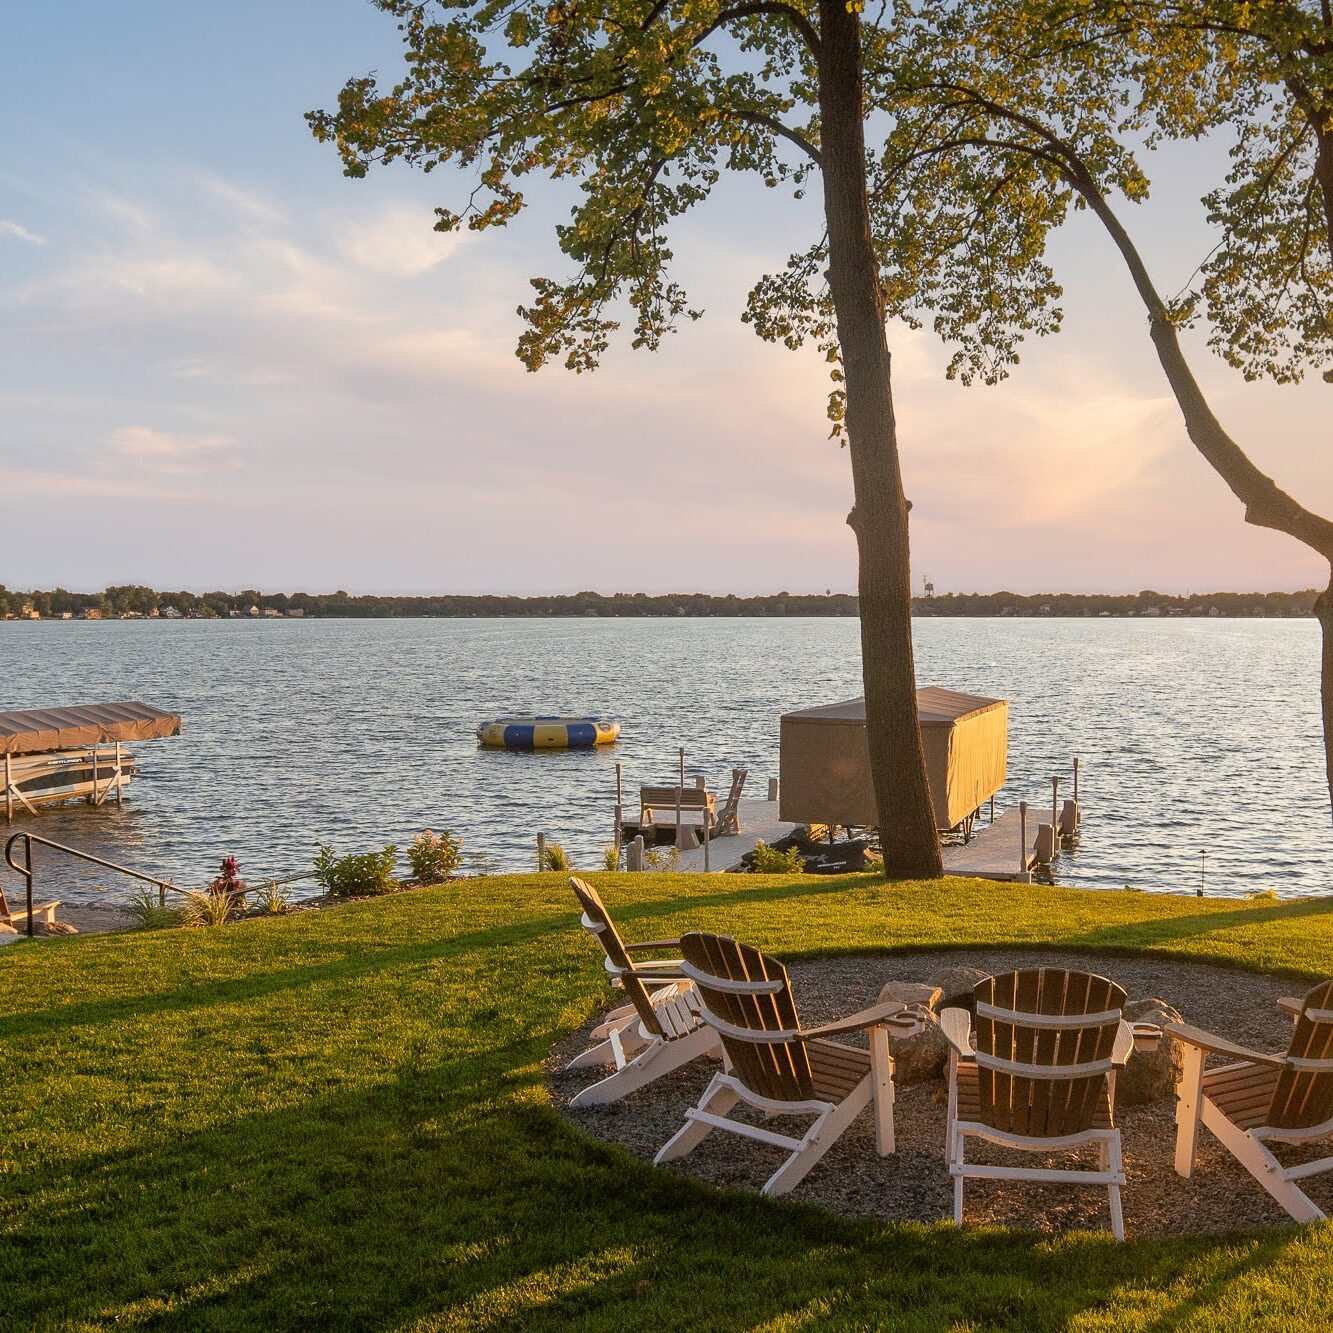 Lakeside Outdoor Furniture Minnesota Interior Design